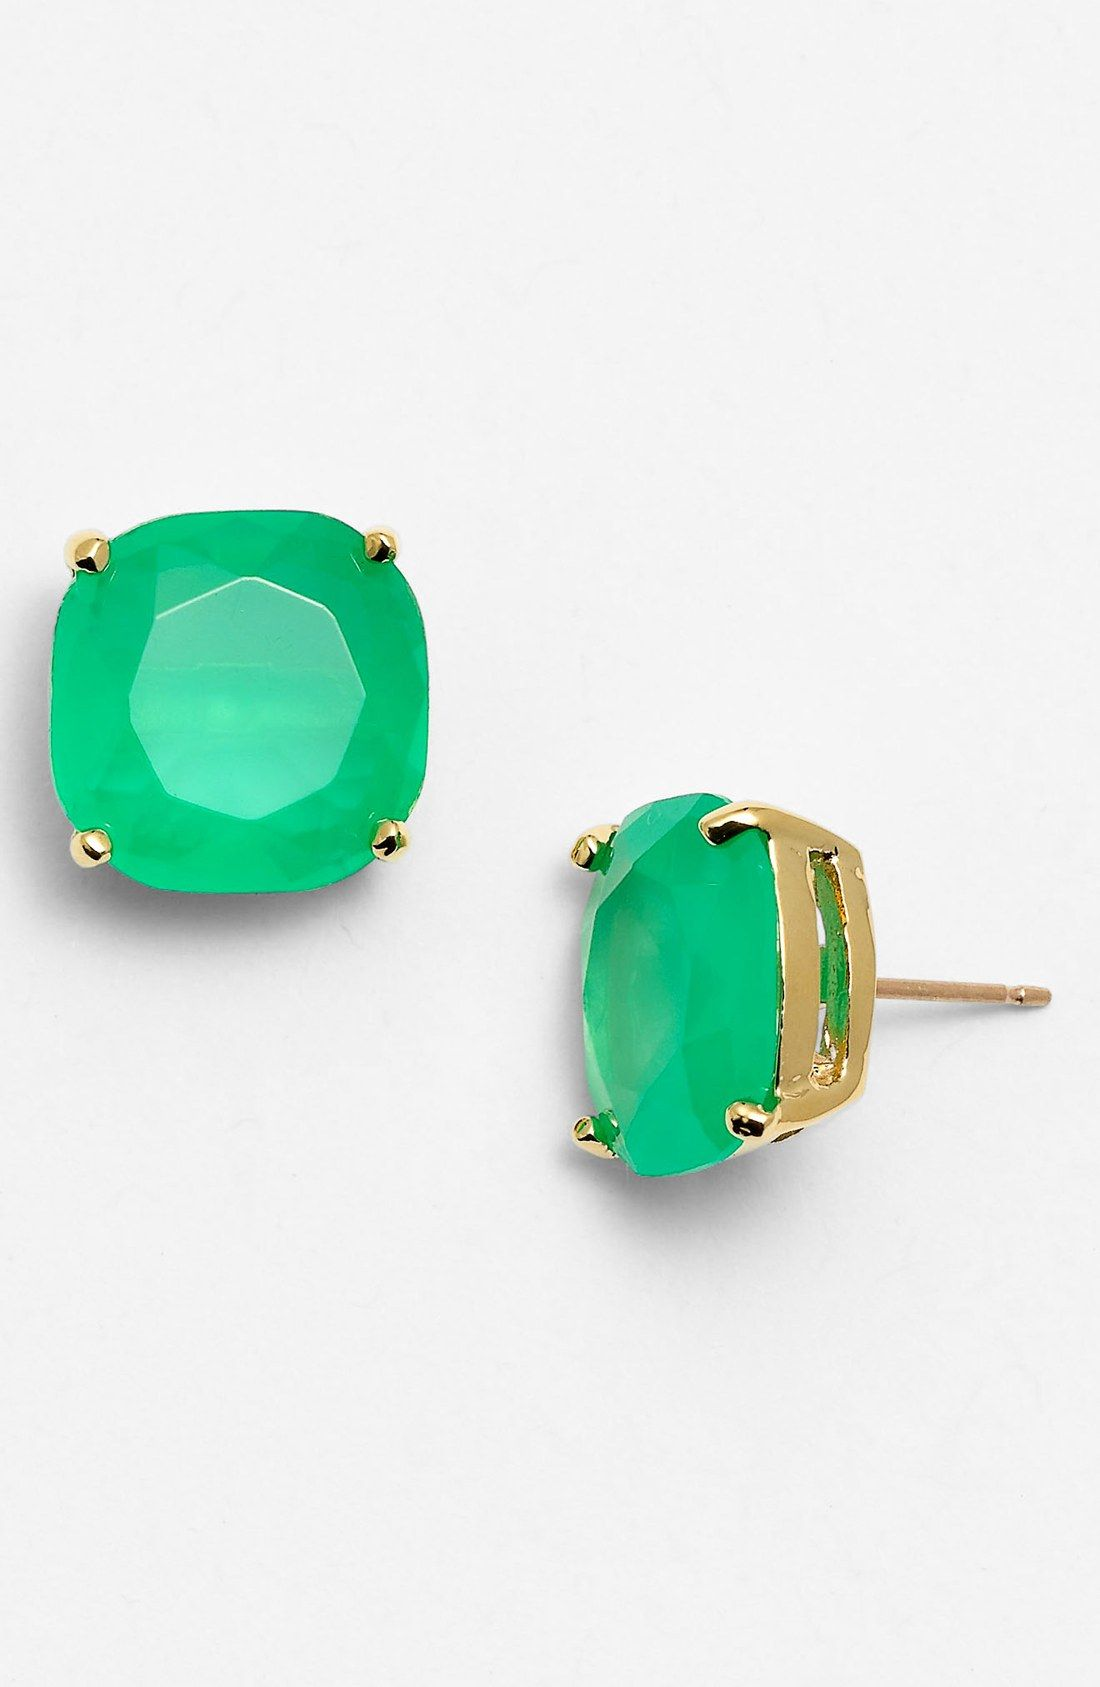 d551d8126 Such pretty green stud earrings for St. Patrick's Day | Kate Spade ...